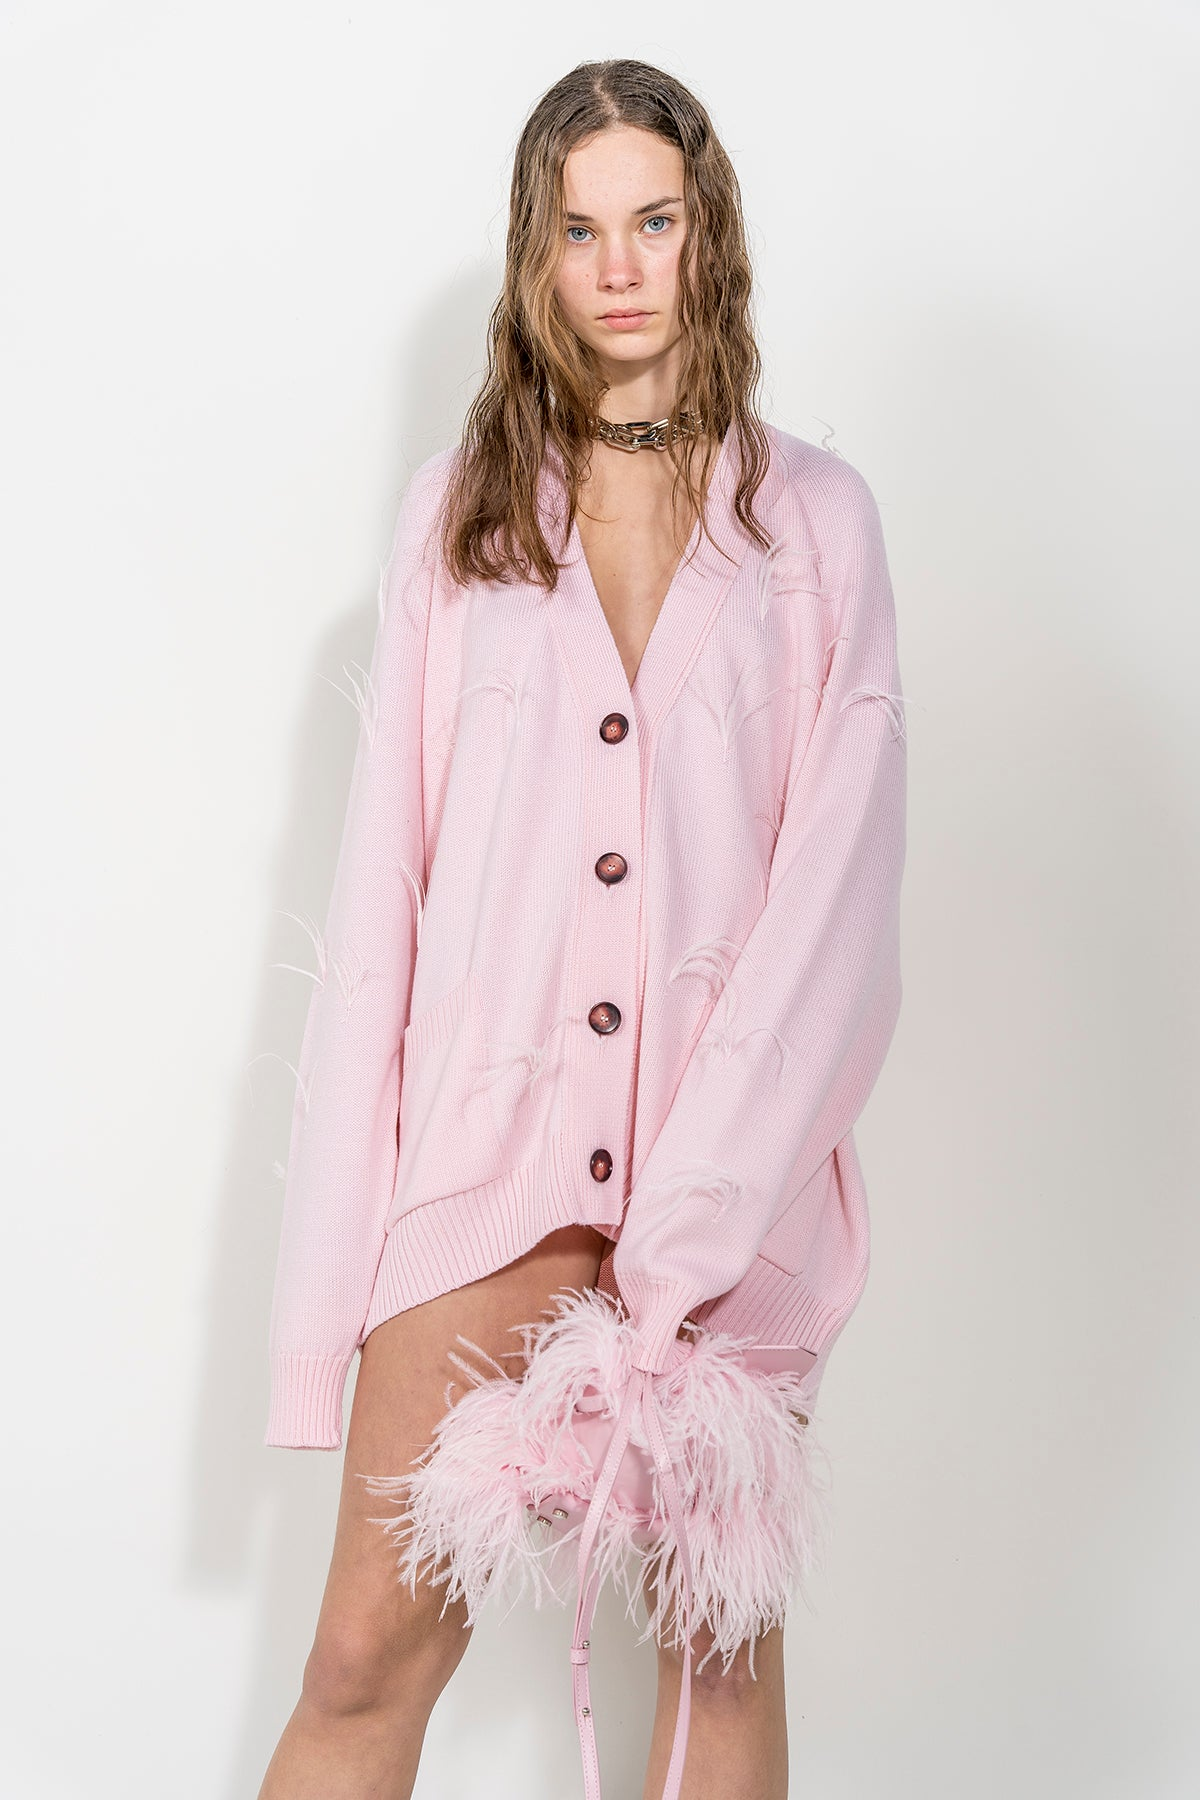 PINK OVERSIZED CARDIGAN WITH FEATHERS marques almeida.